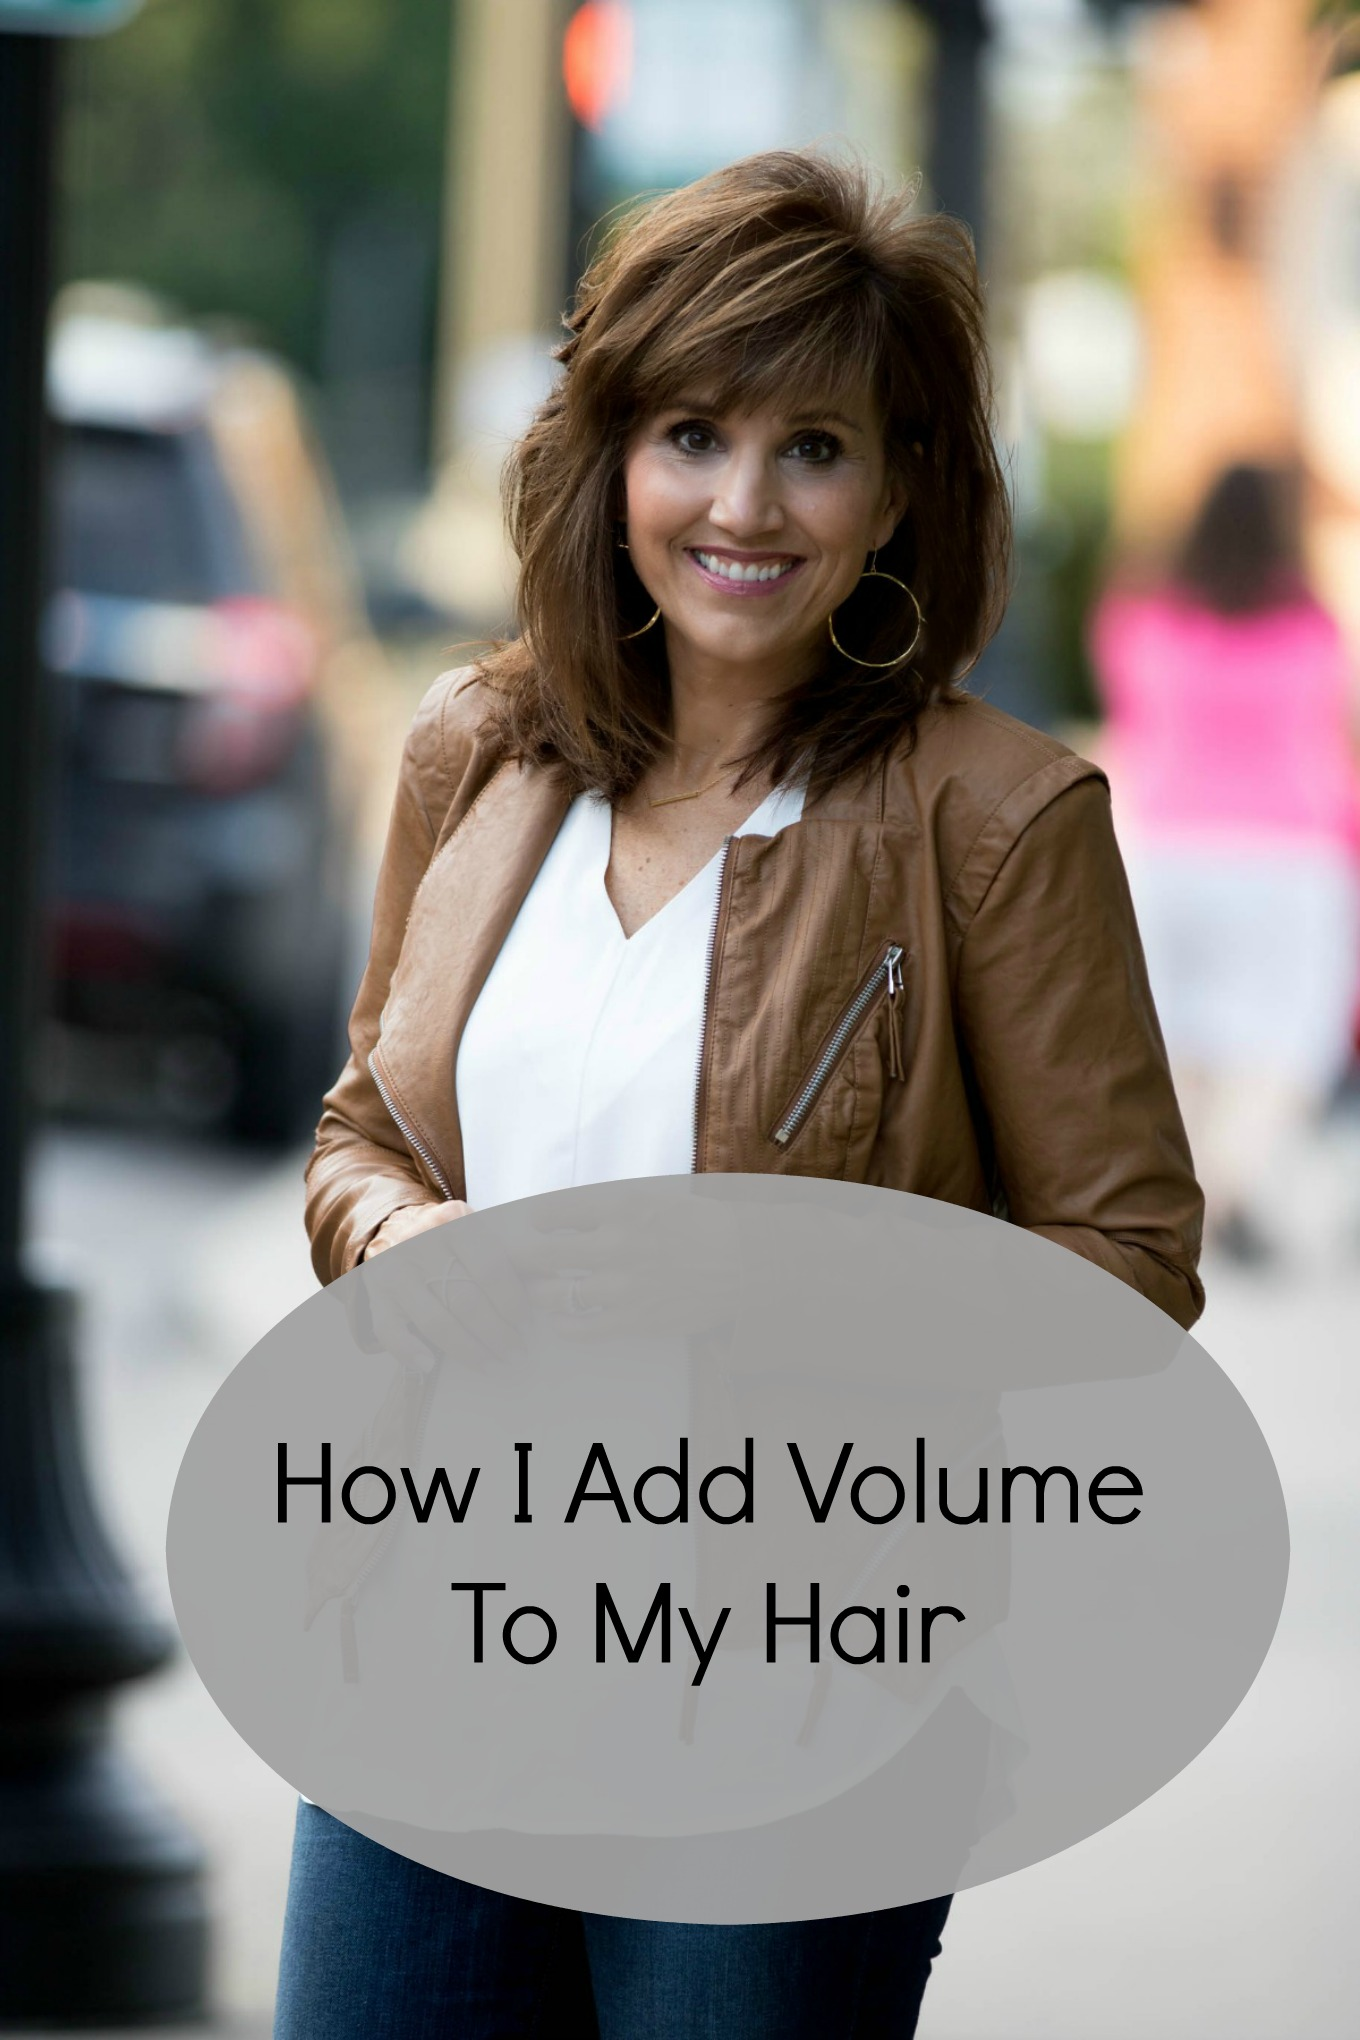 Fashion & Beauty blogger, Cyndi Spivey, shares how she adds volume to her hair.